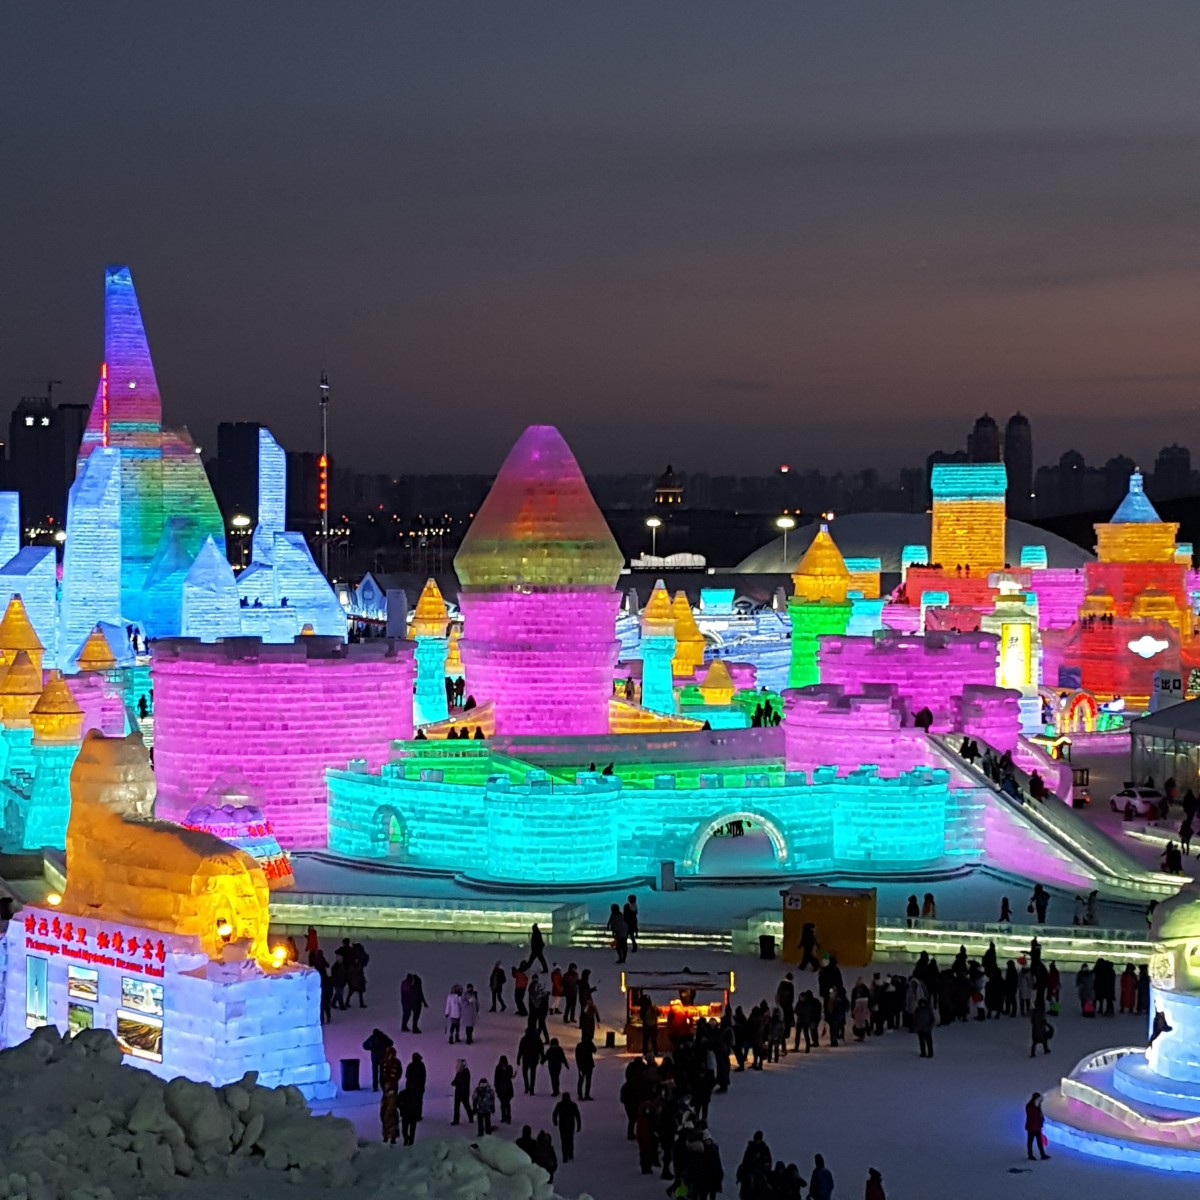 Harbin International Snow and Ice Festival: A Photo Gallery